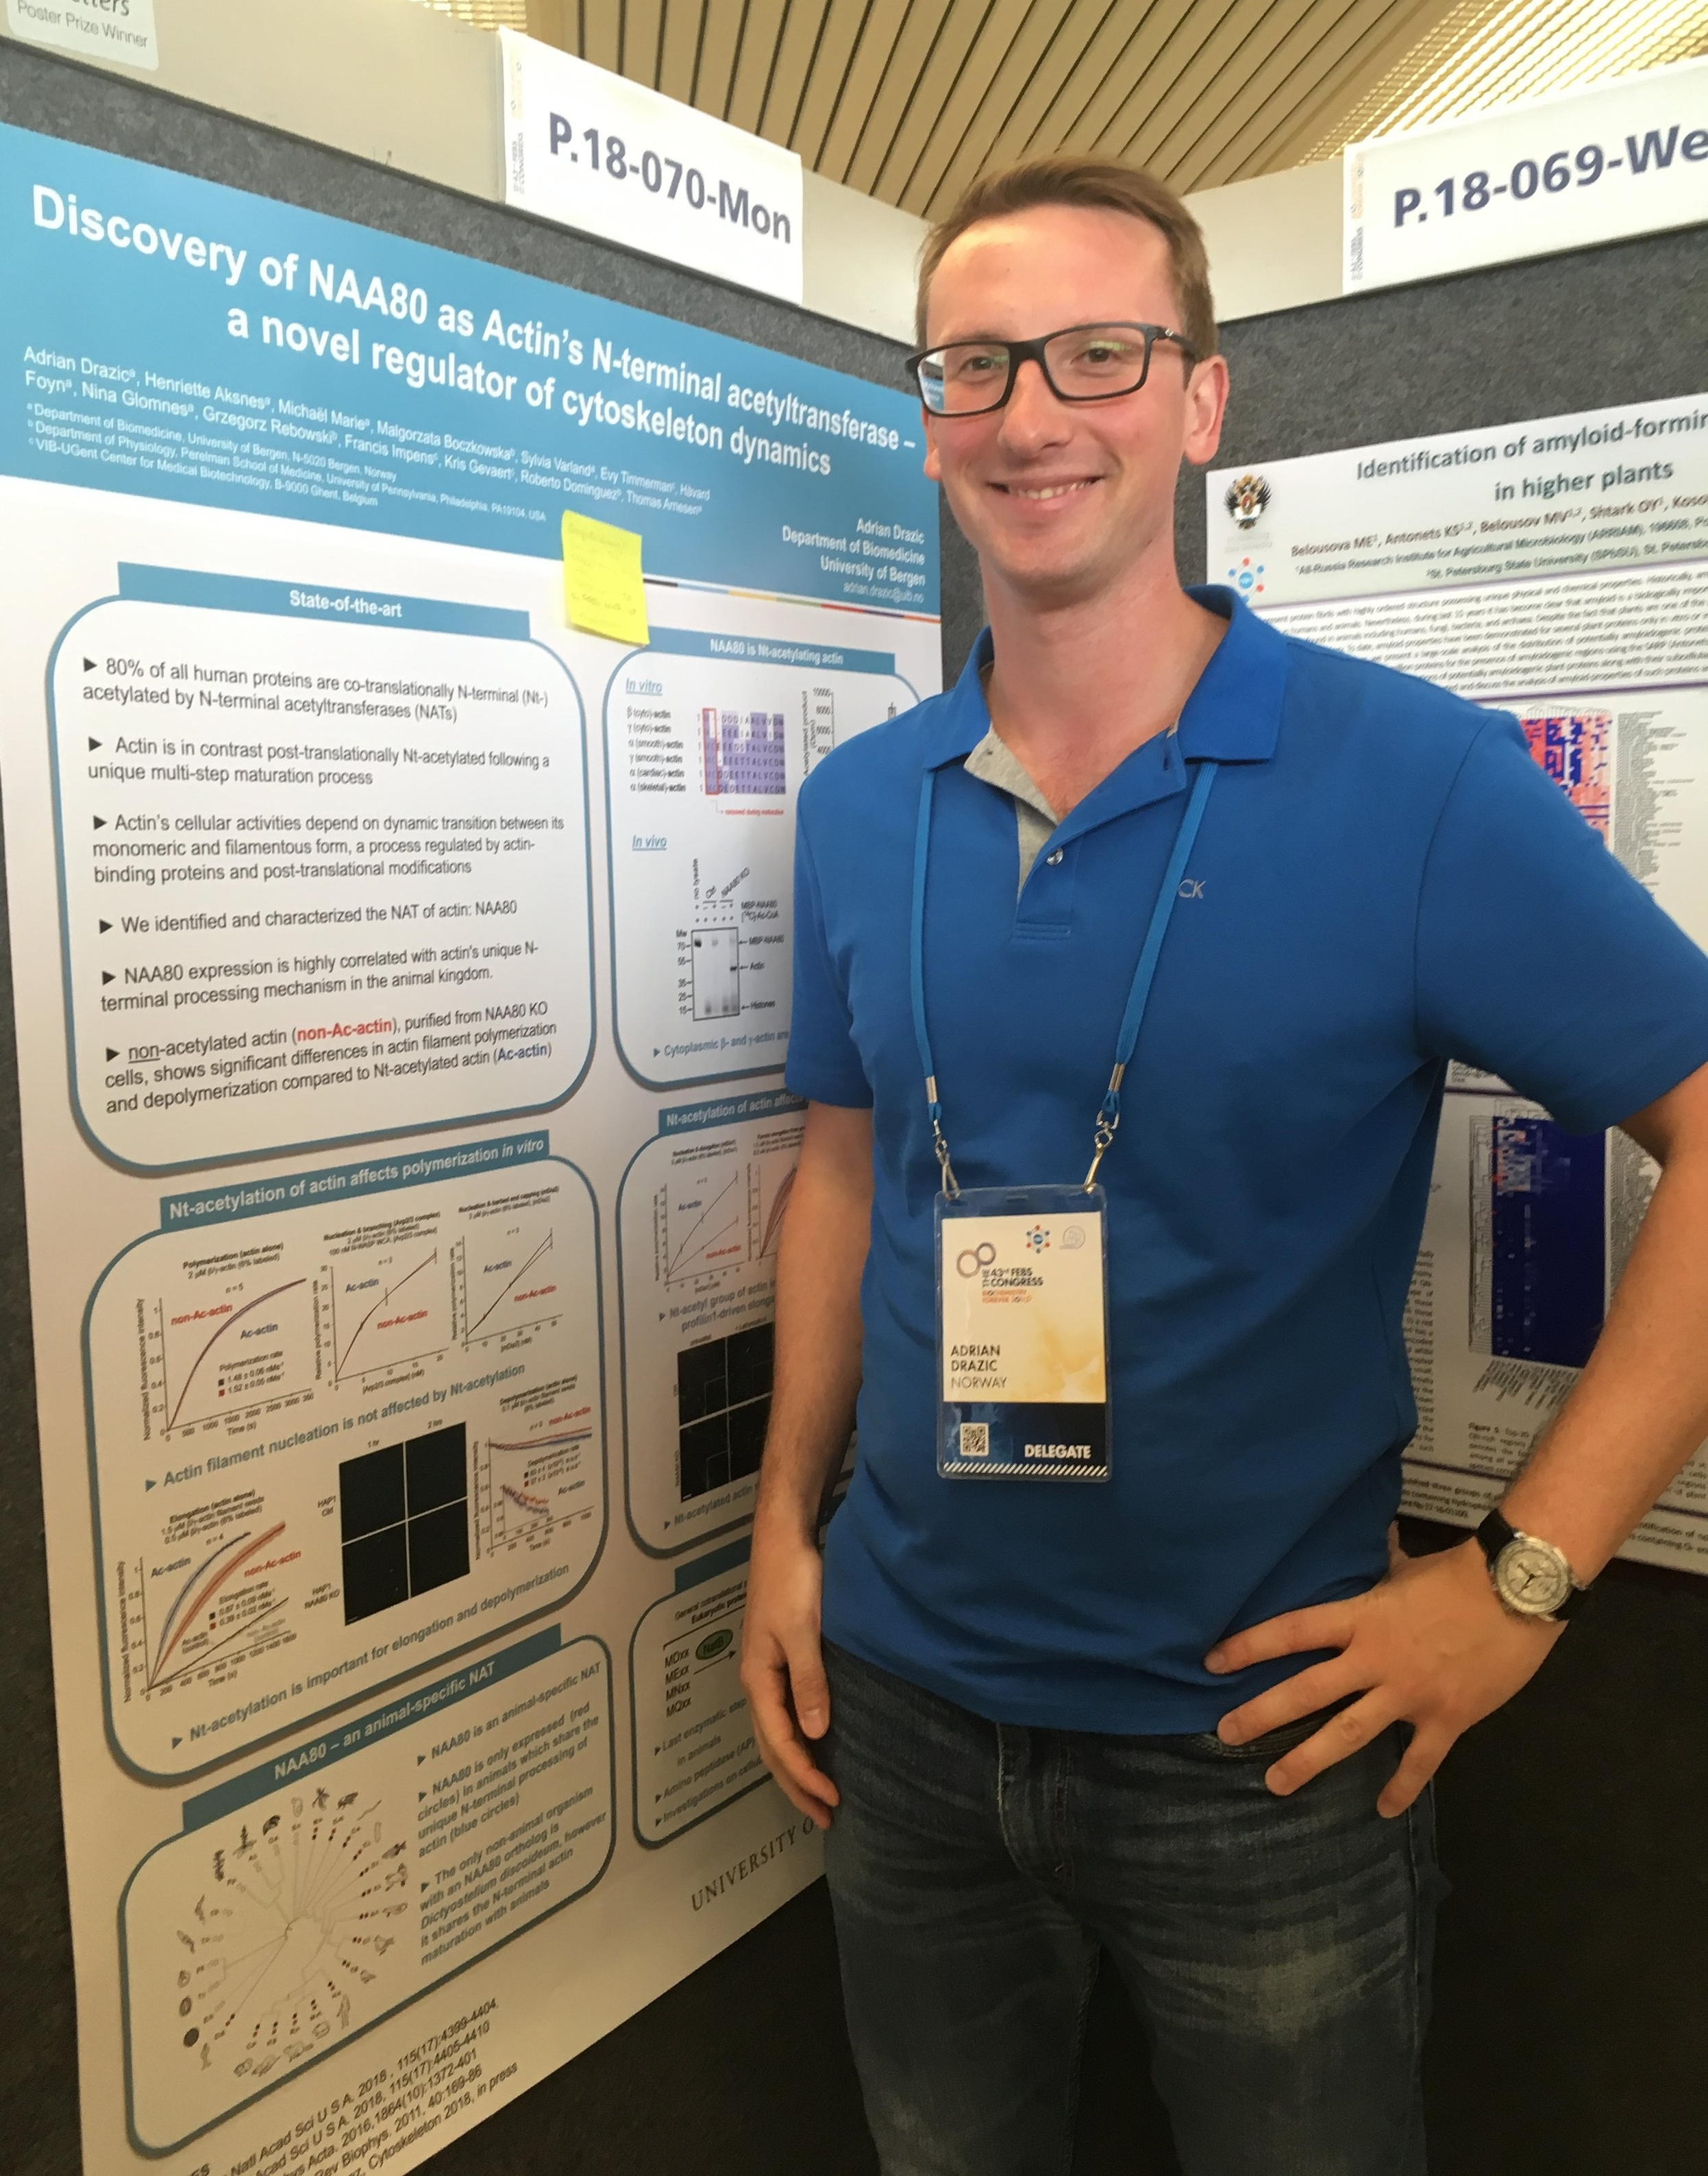 """Adrian Drazic's poster """"Discovery of NAA80 as actin's N-terminal acetyltransferase – a novel regulator of cytoskeleton dynamics"""" won the FEBS Letter daily poster award"""